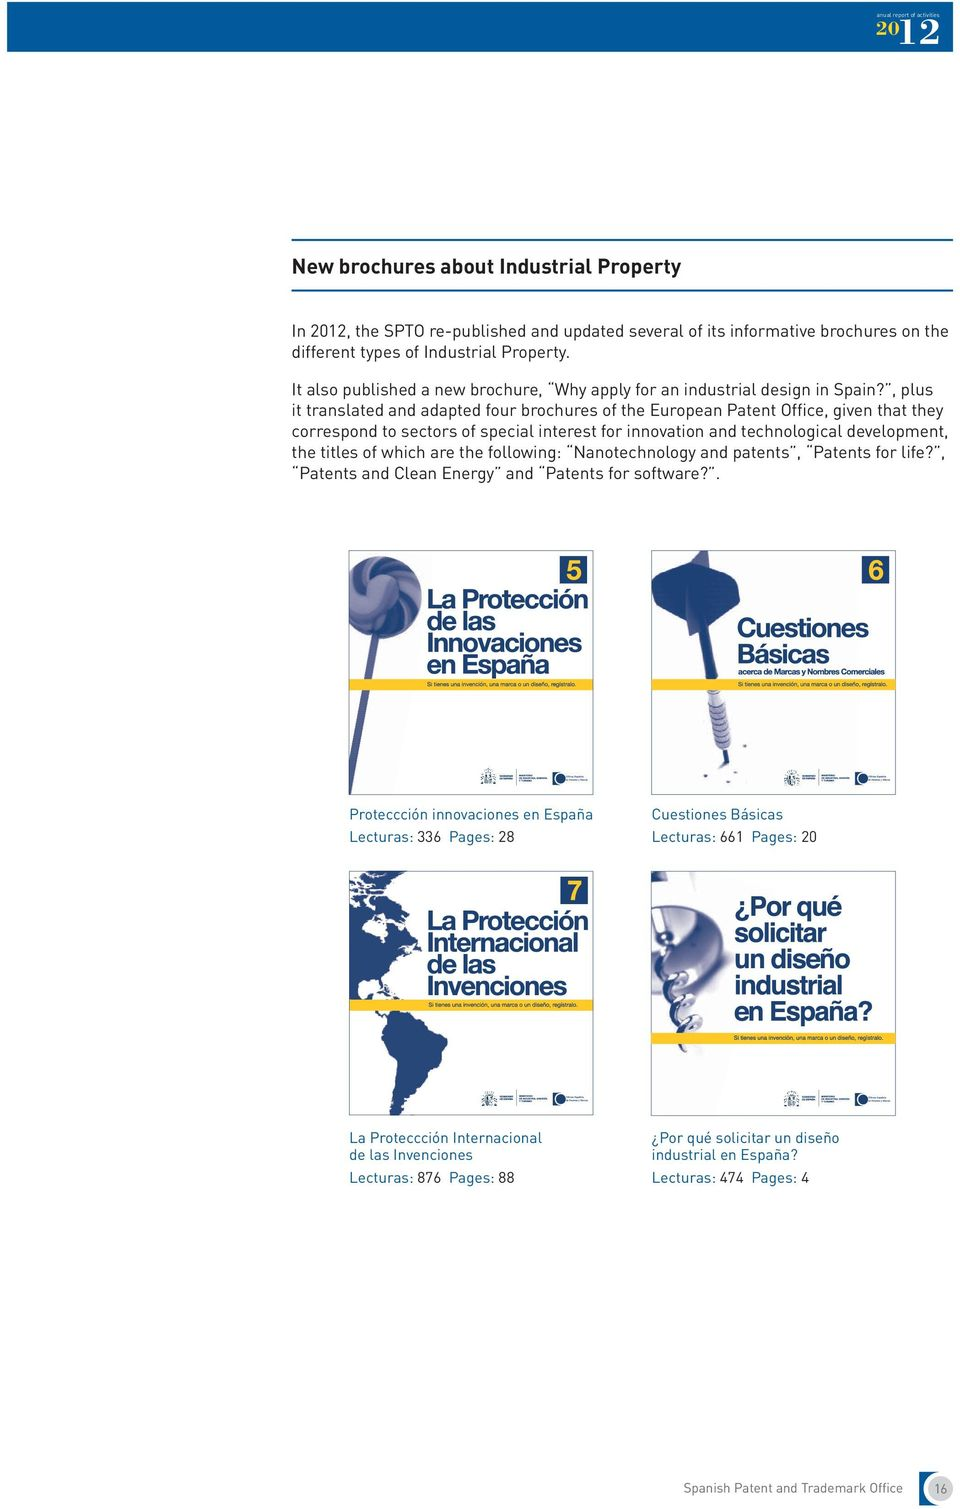 , plus it translated and adapted four brochures of the European Patent Office, given that they correspond to sectors of special interest for innovation and technological development, the titles of